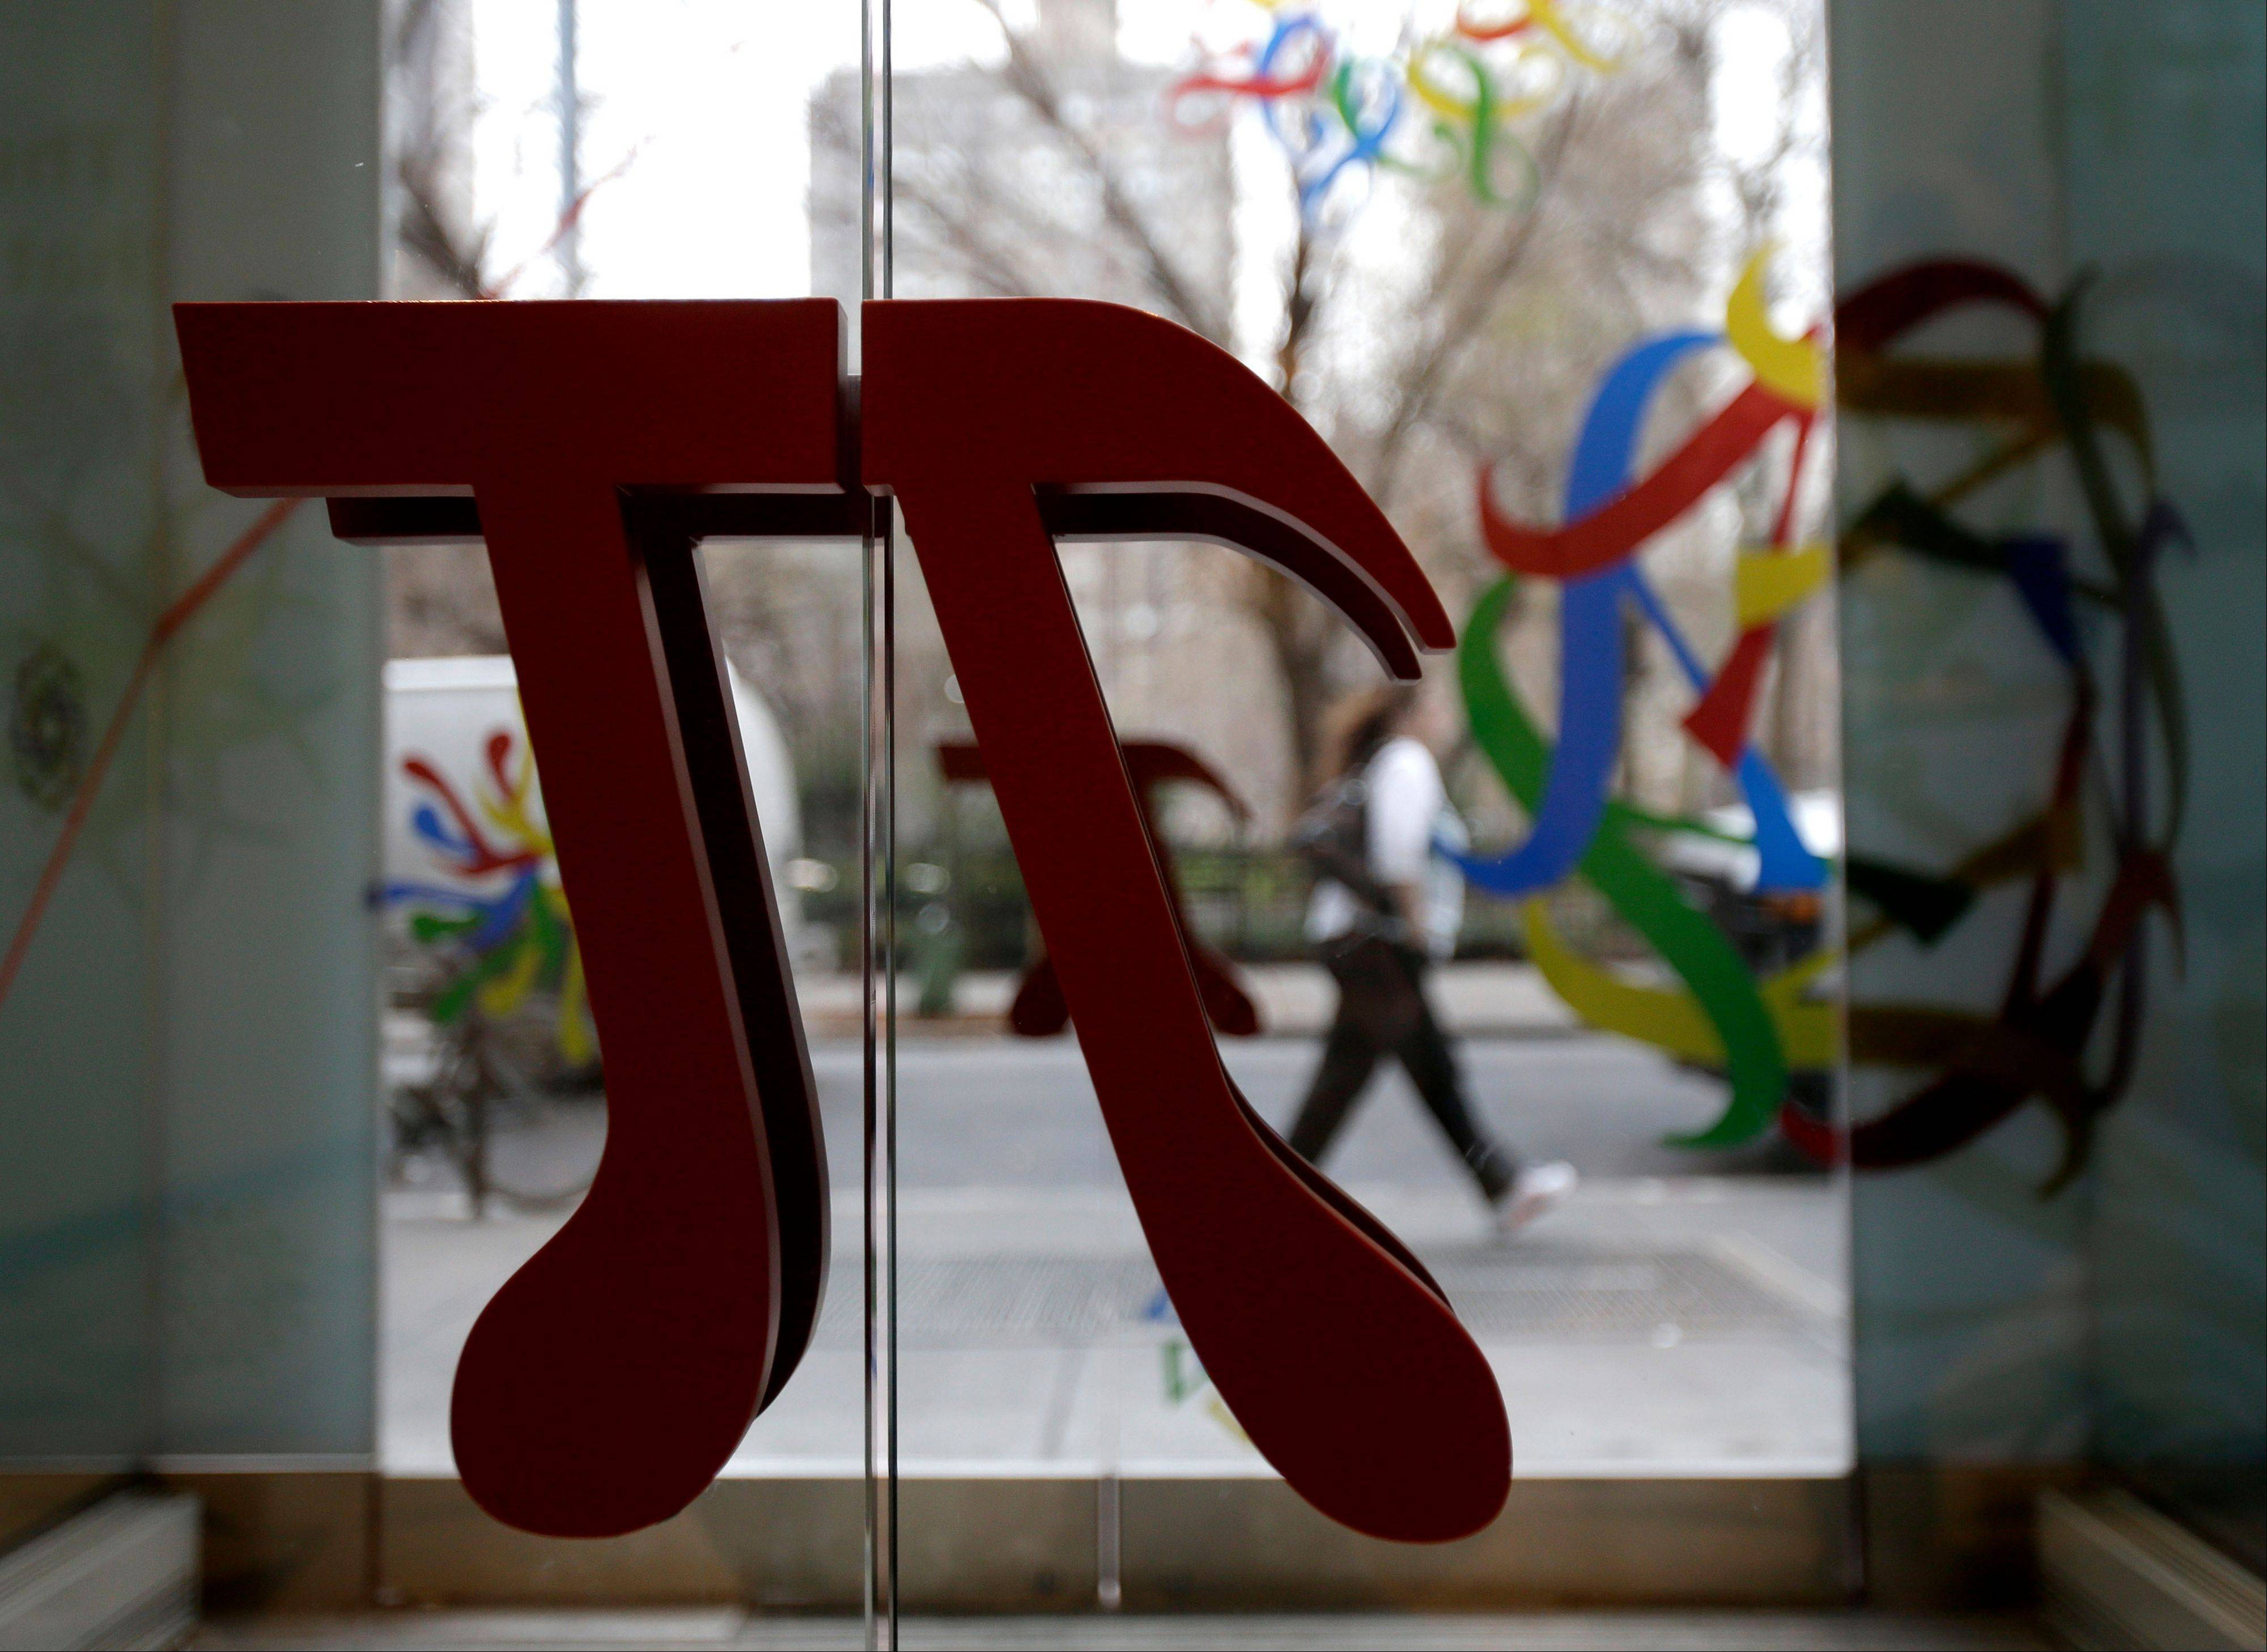 A door handle in the shape of pi is seen at the new National Museum of Mathematics in New York. The museum is aimed at kids aged 8 to 13, and curators have given the place a playground feel.